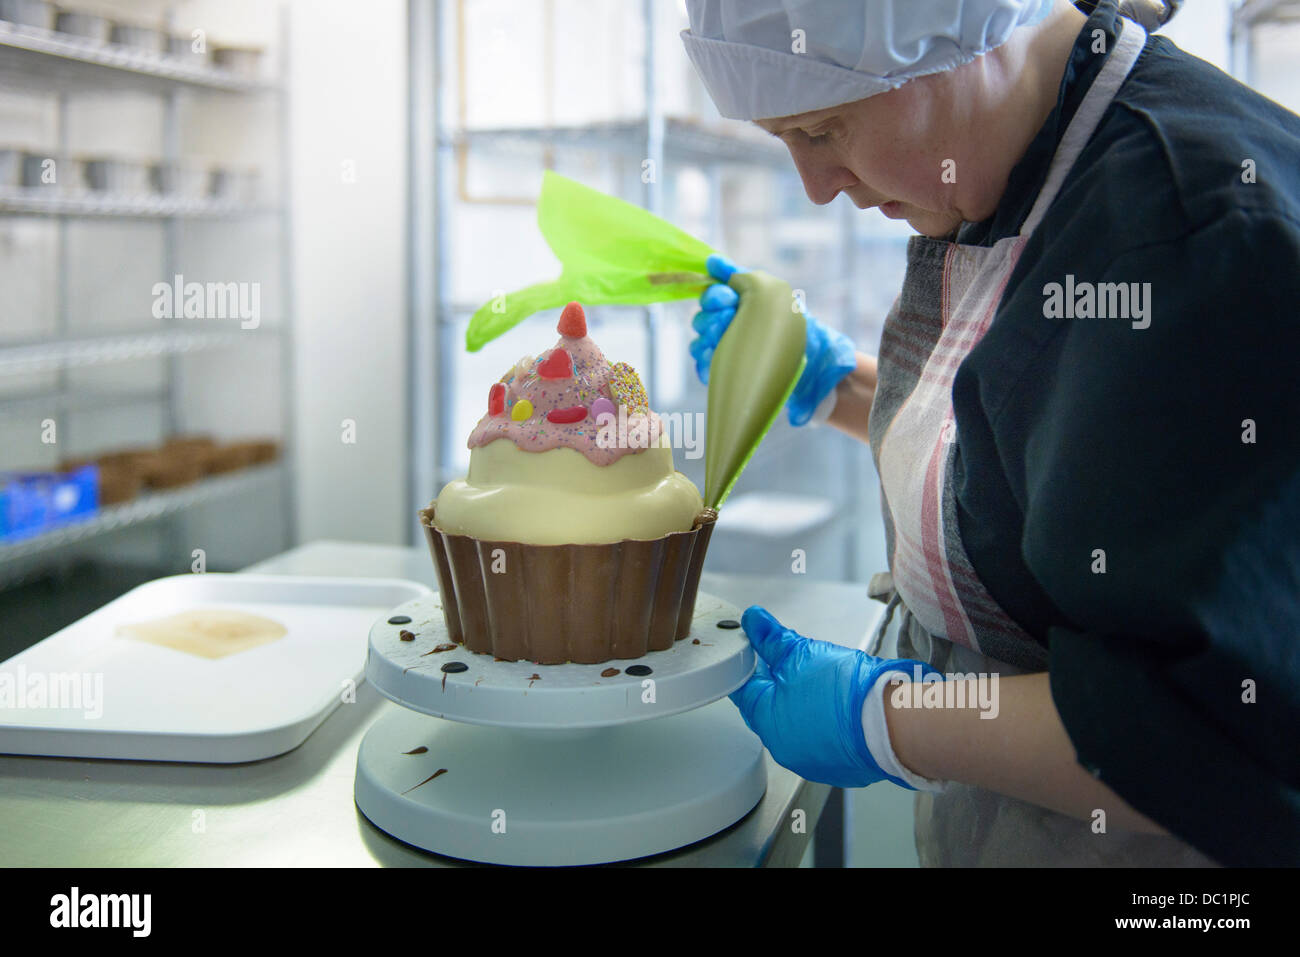 Chocolatier icing giant size cup cake - Stock Image